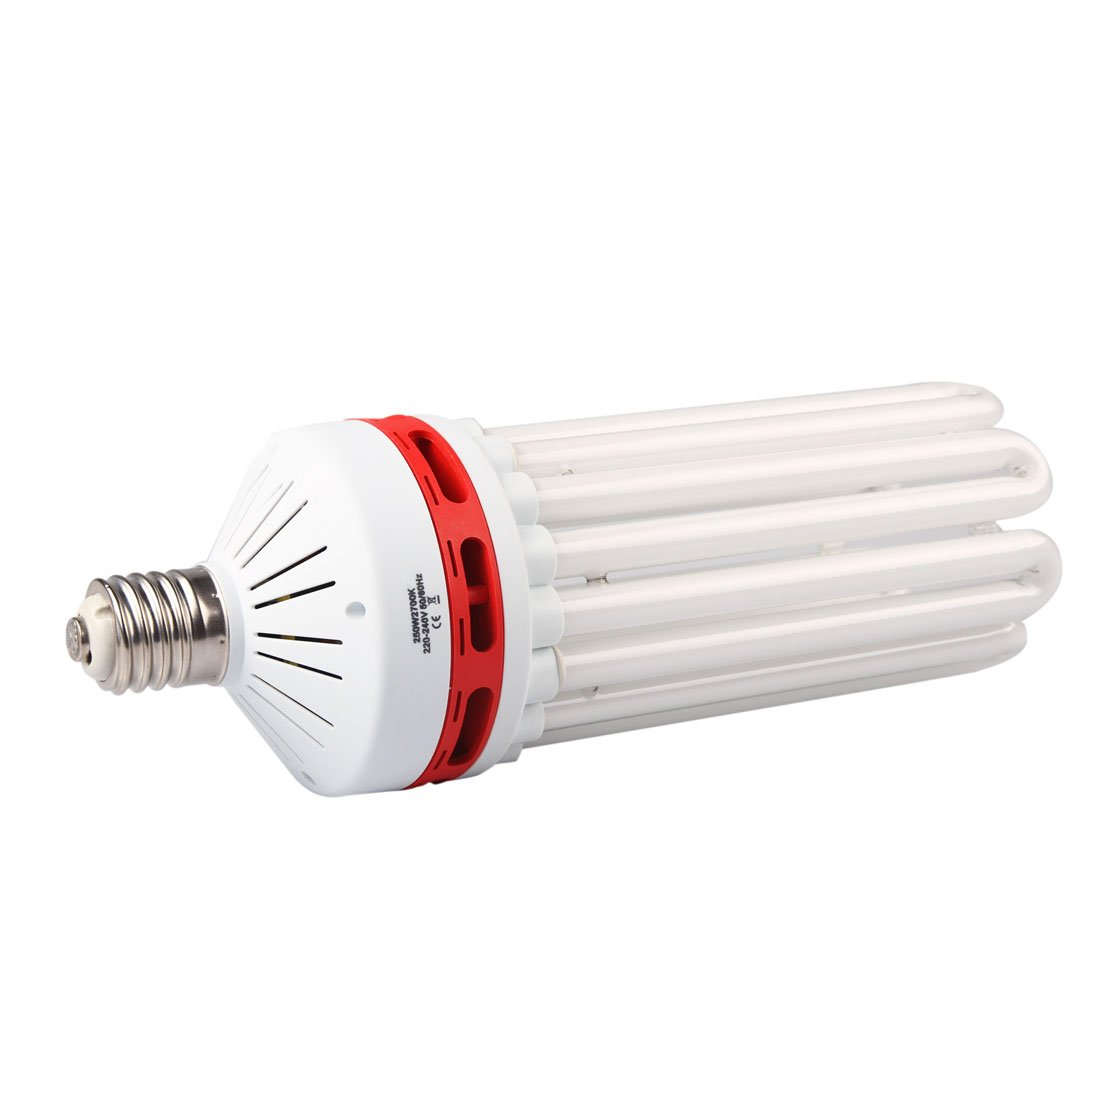 250w red compact fluorescent lamp warm white cfl grow light bulb 250w red compact fluorescent lamp warm white cfl grow light bulb hydroponics low energy eco flowering lamp e40 2700k 17000lm amazon diy tools mightylinksfo